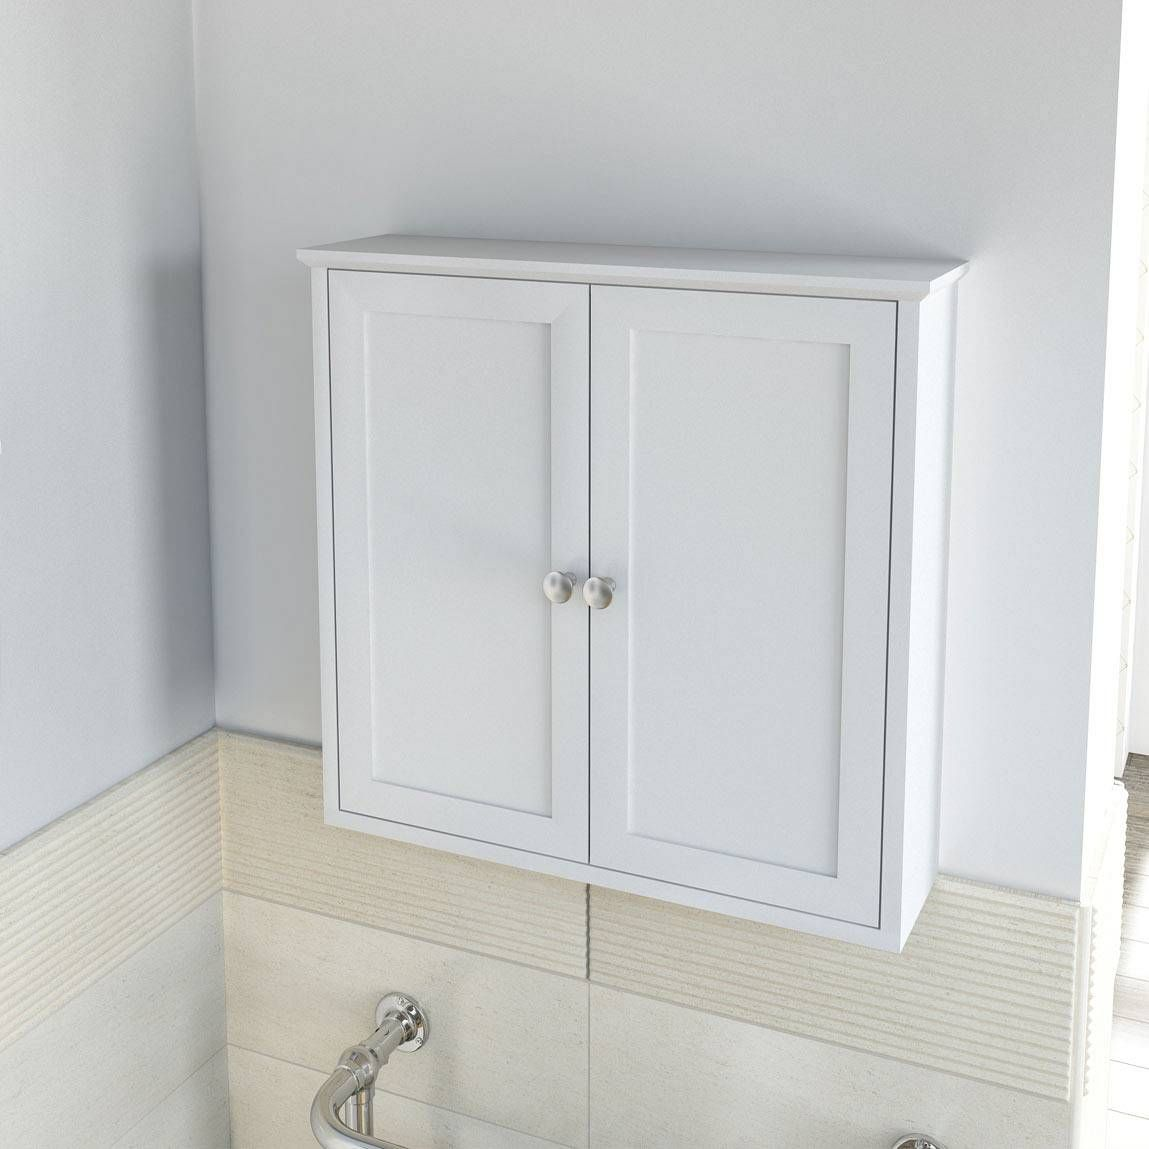 wall mounted cabinet 60 also in sage green bathroom wall cabinet